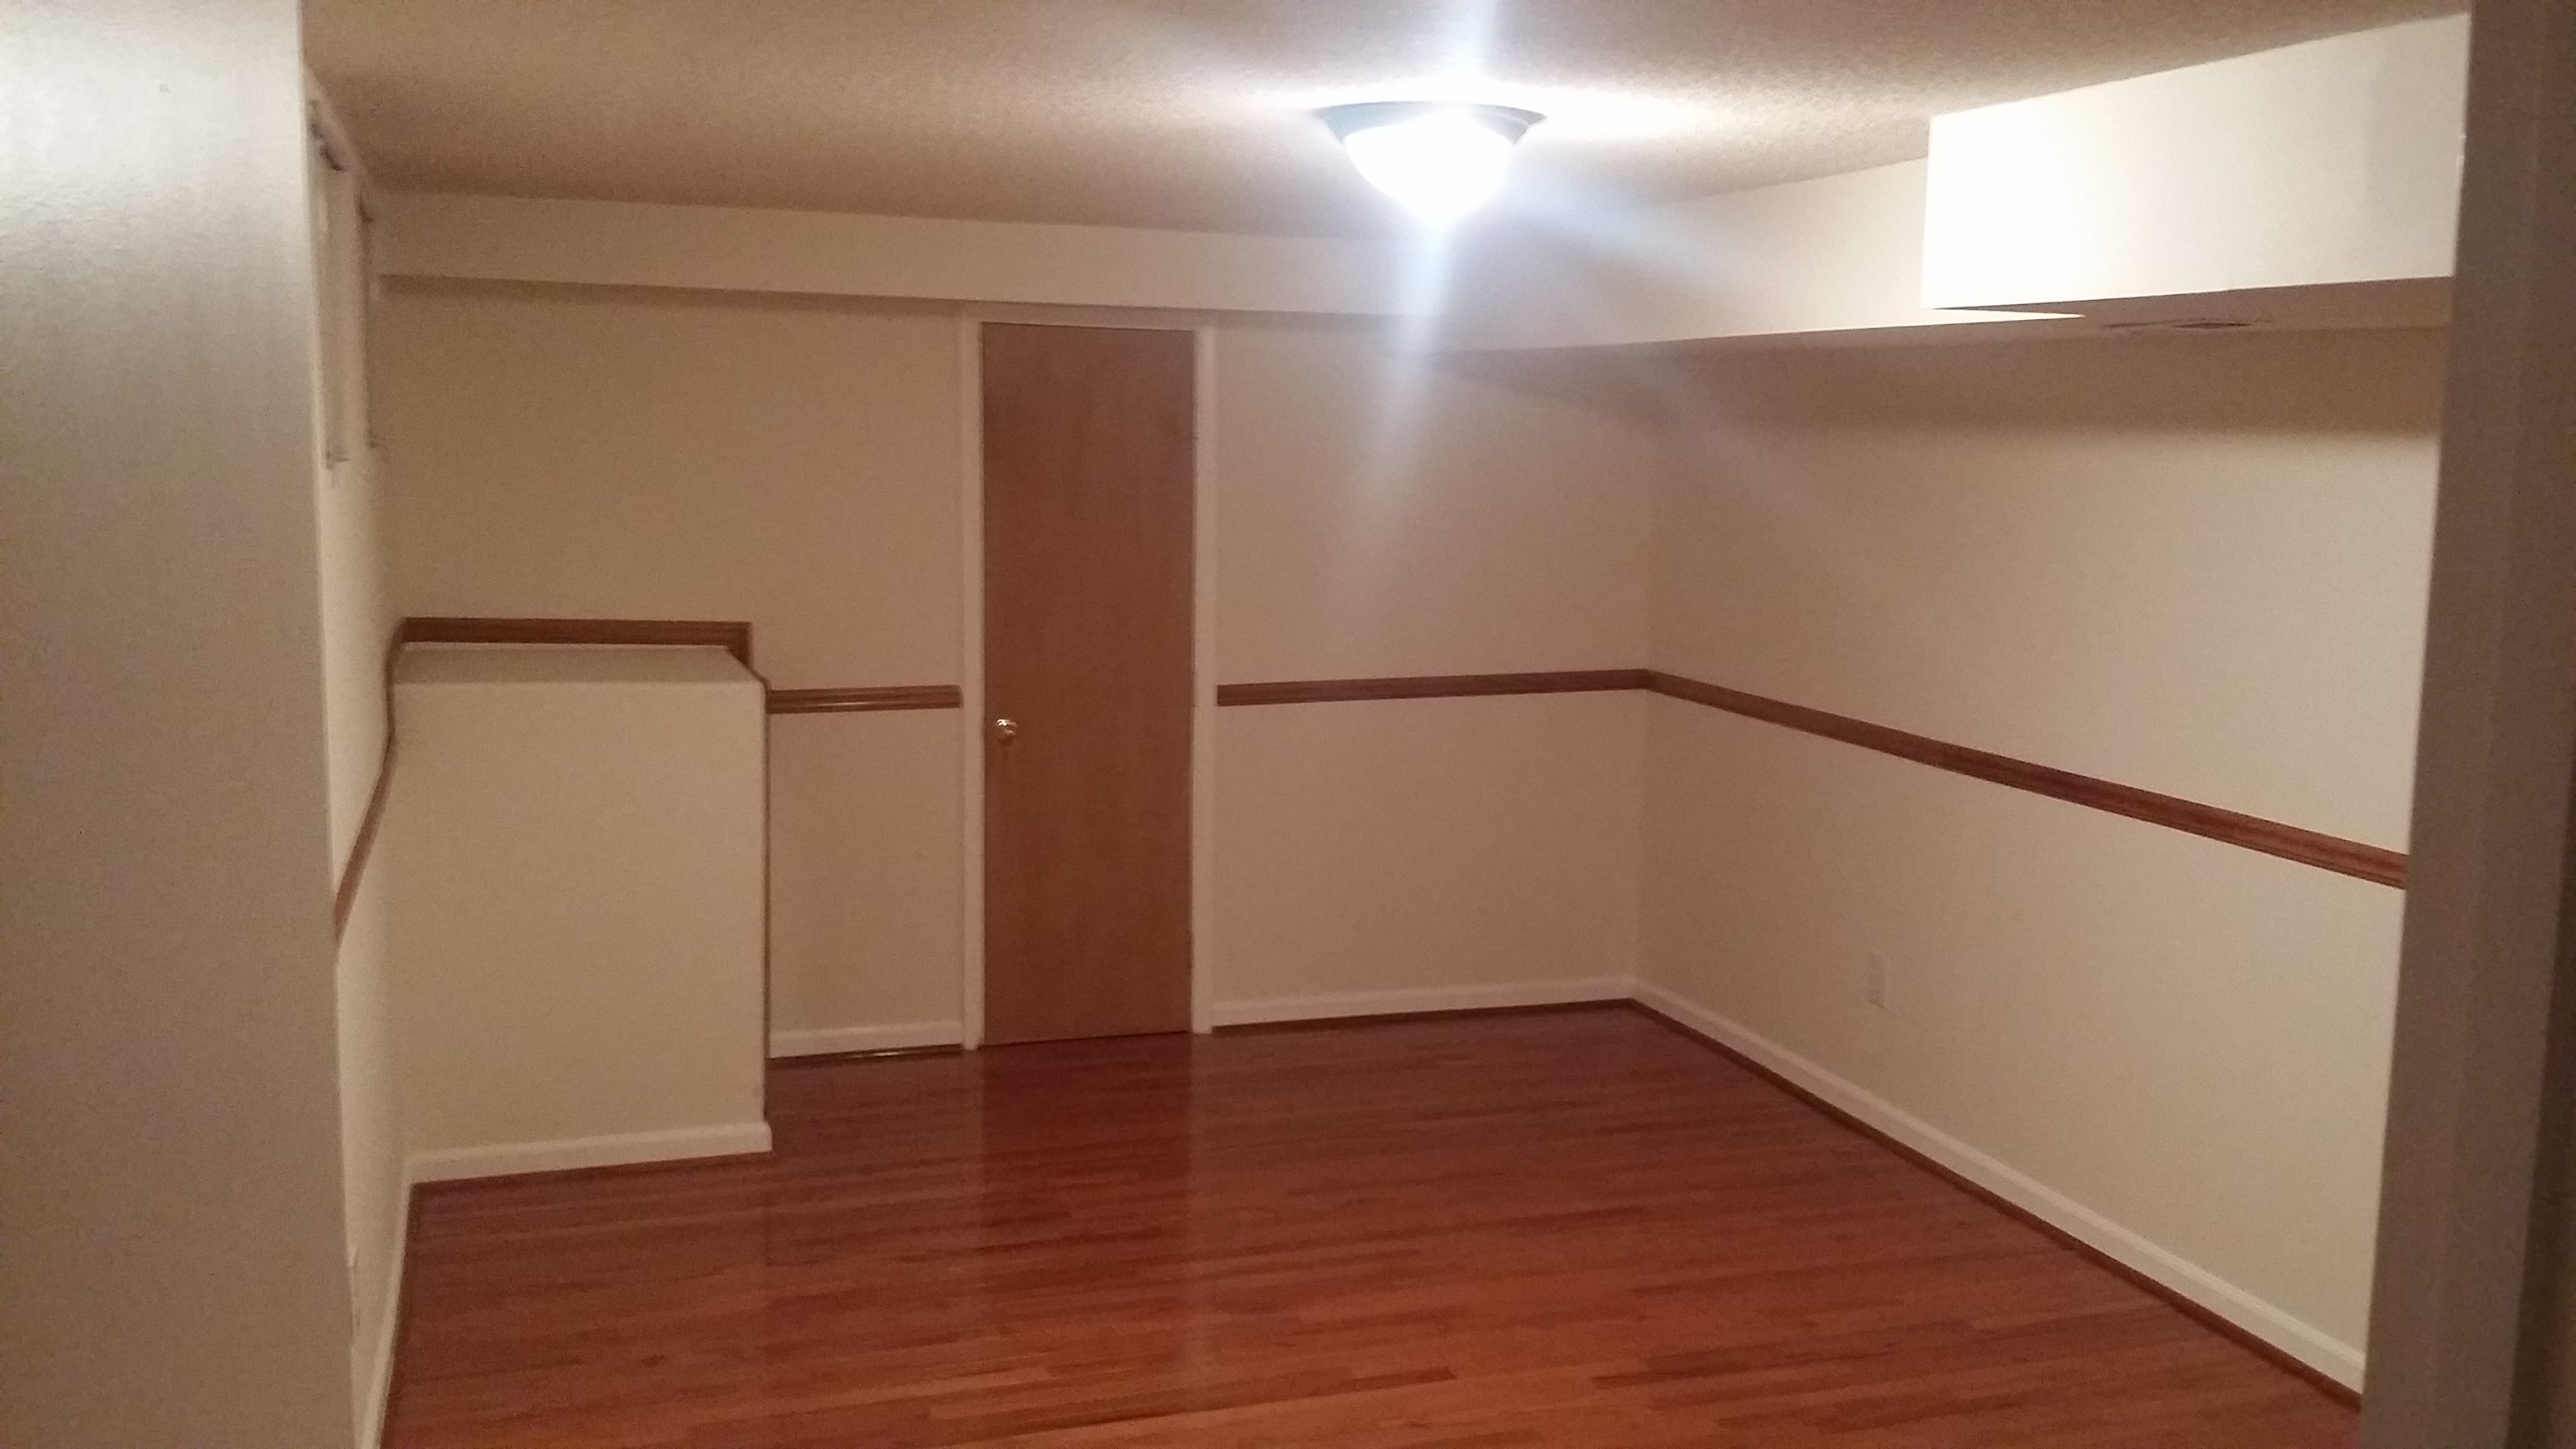 basement room for rent in germantown md 786298 sulekha roommates